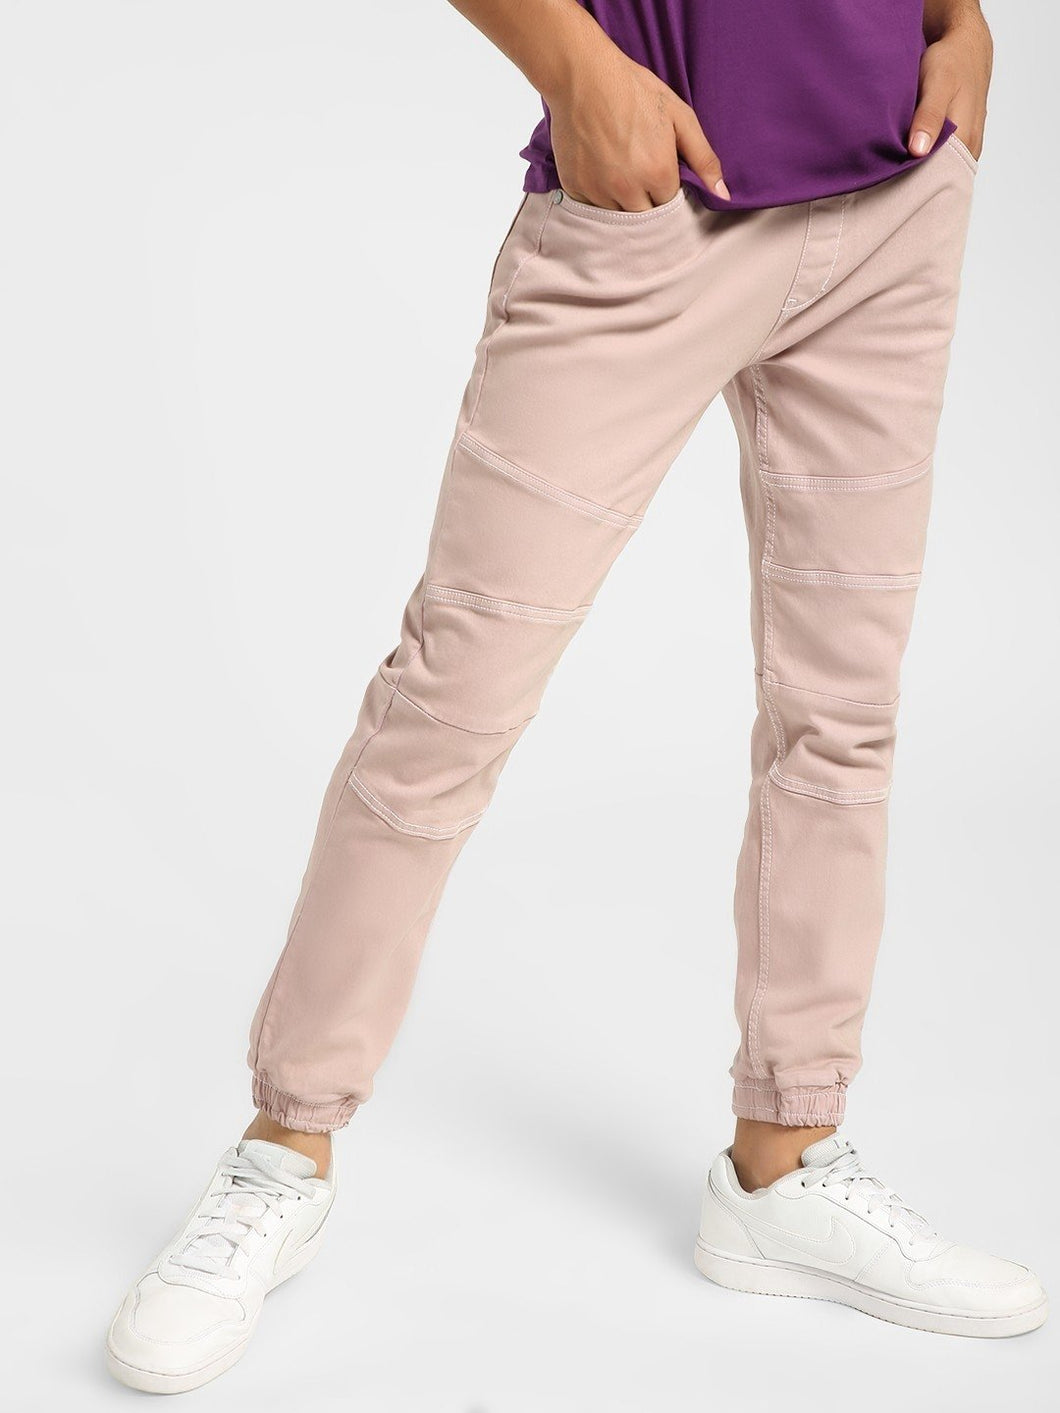 Premium Pink Fashionable Joggers  Rs. 1899 | Book for Rs. 31 only